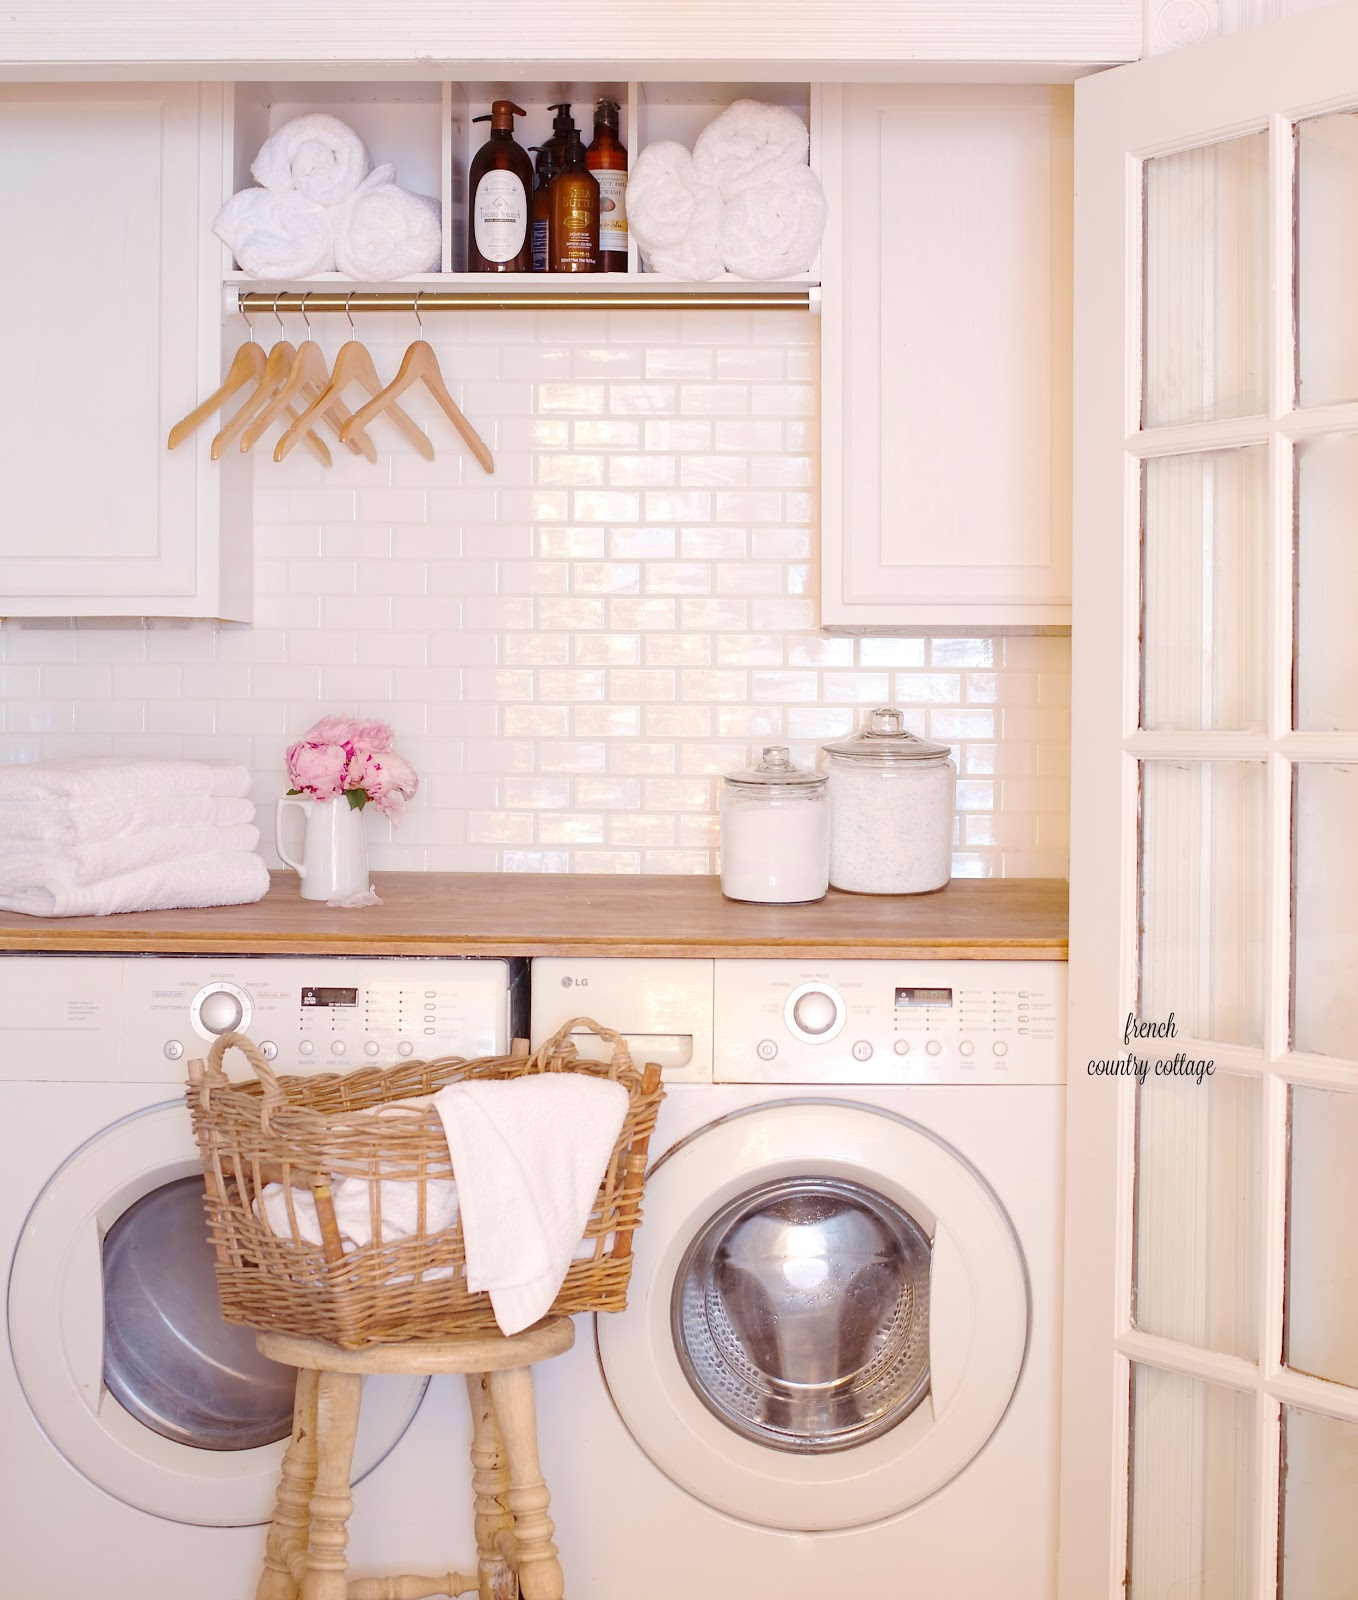 Under $500 Laundry Room Renovation REVEAL   FRENCH COUNTRY COTTAGE